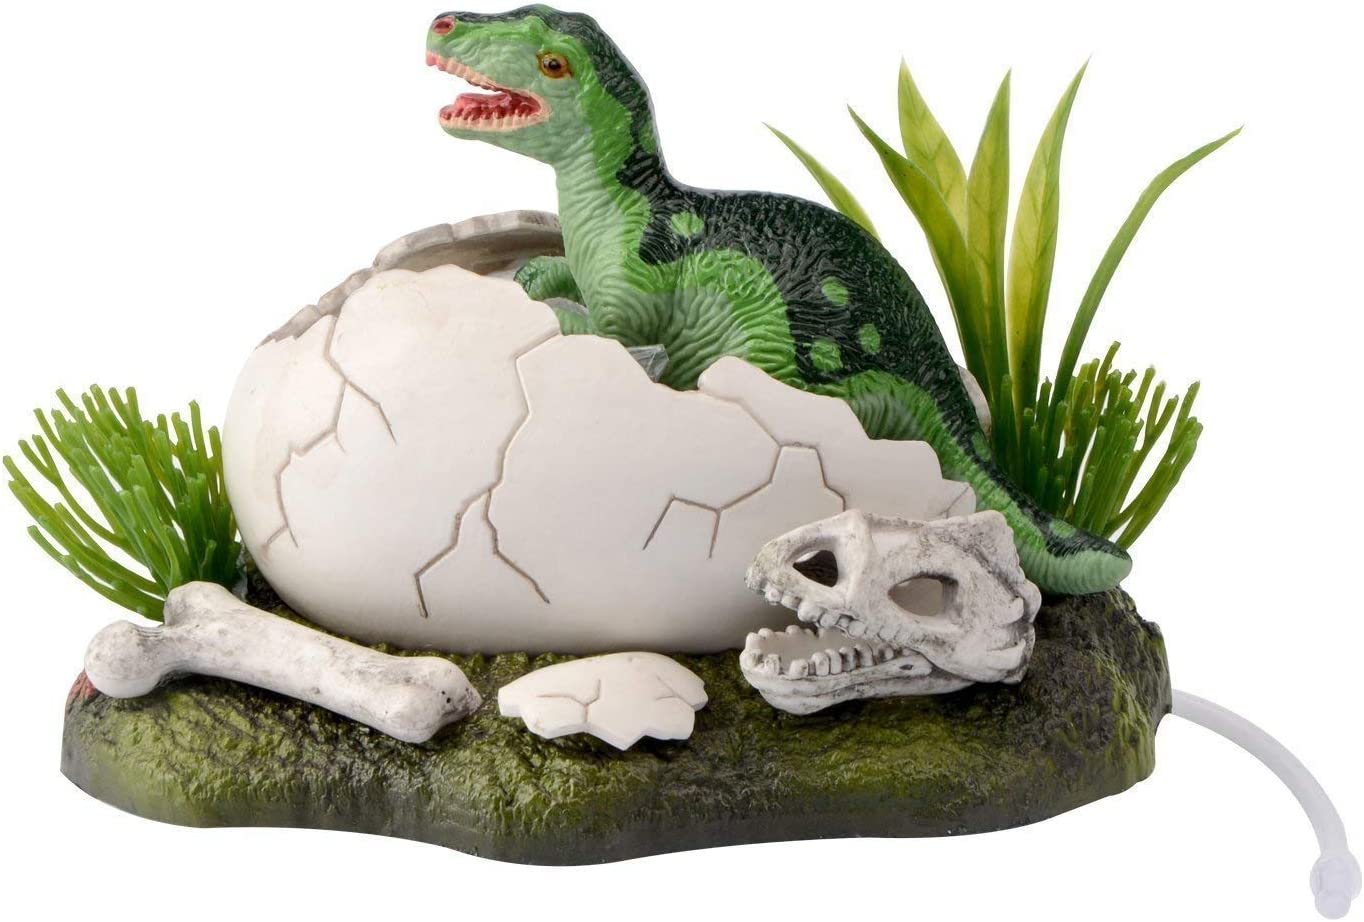 Saim New Born Baby Dinosaur Live Action Aquarium Ornament Fish Tank Decoration